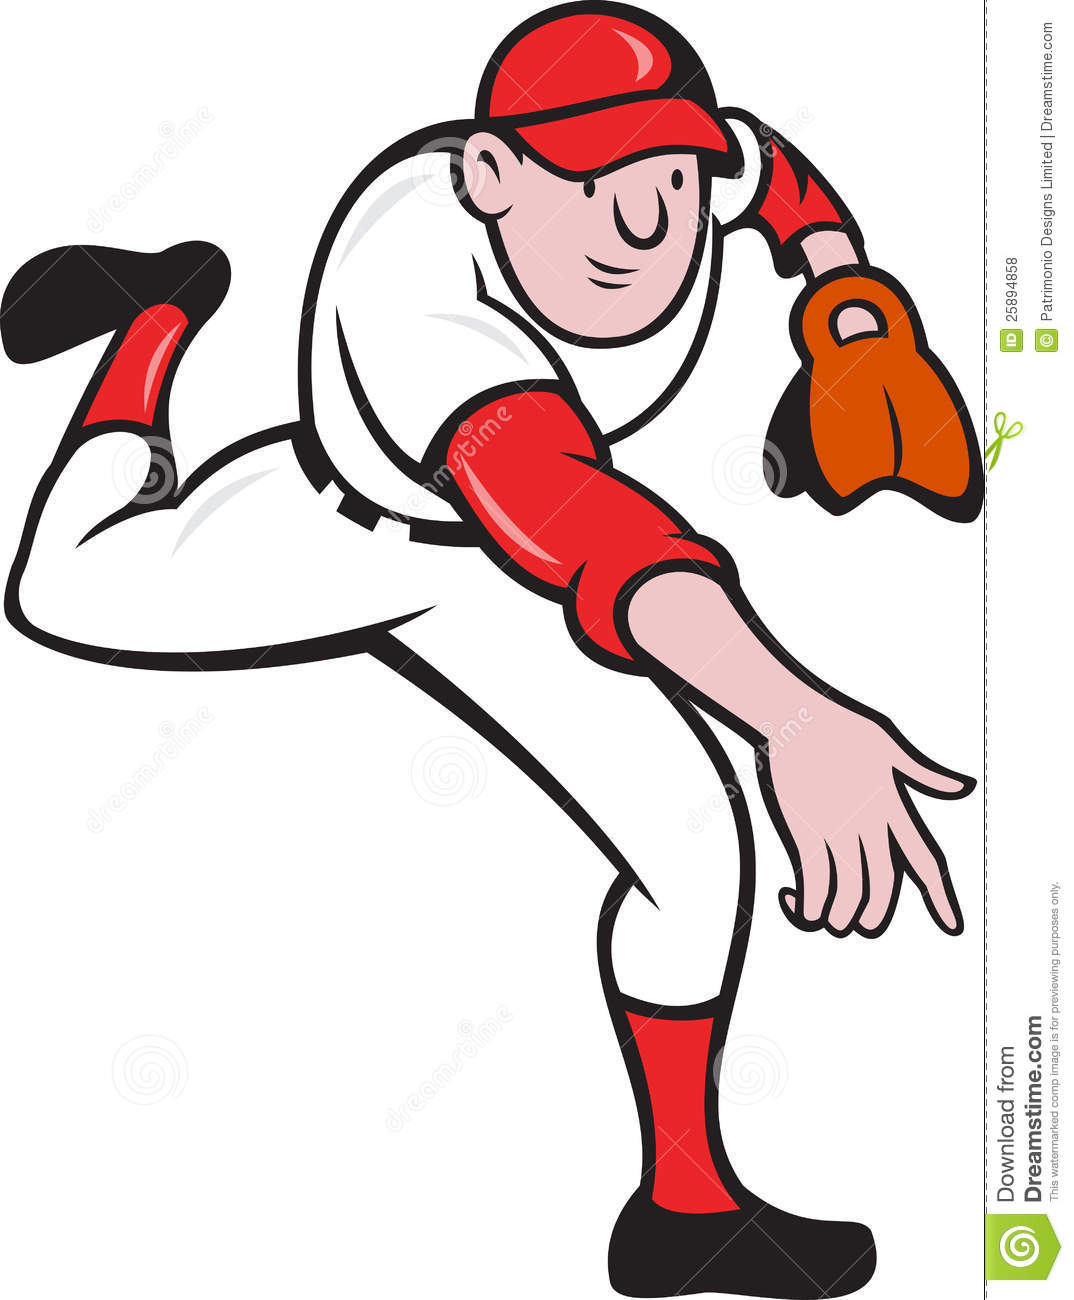 1074x1300 Baseball Pitcher And Catcher Clipart